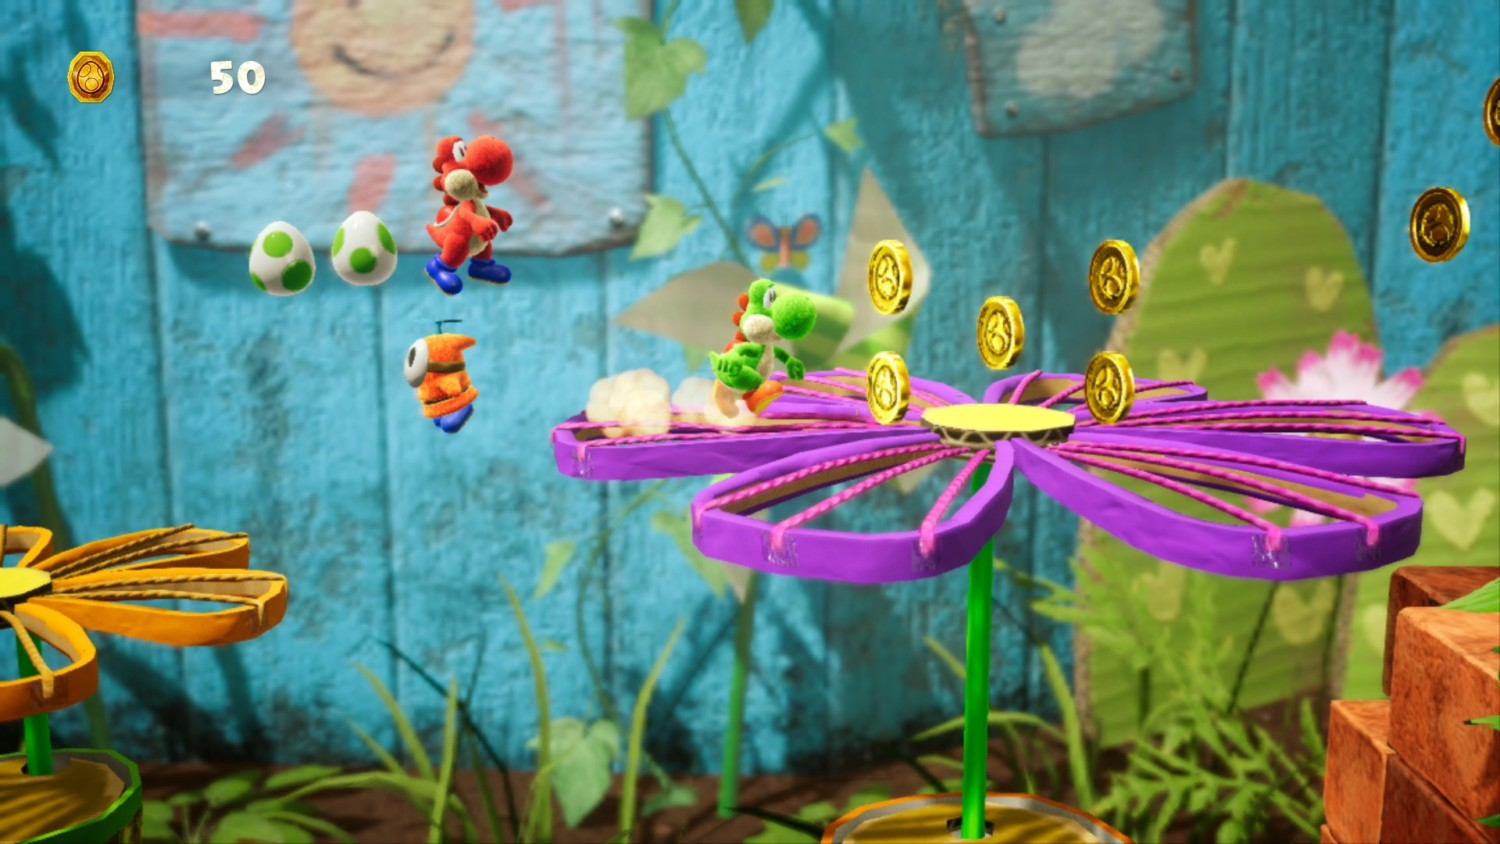 Yoshi's Crafted World Is The First Nintendo Game Developed With Unreal Engine 4